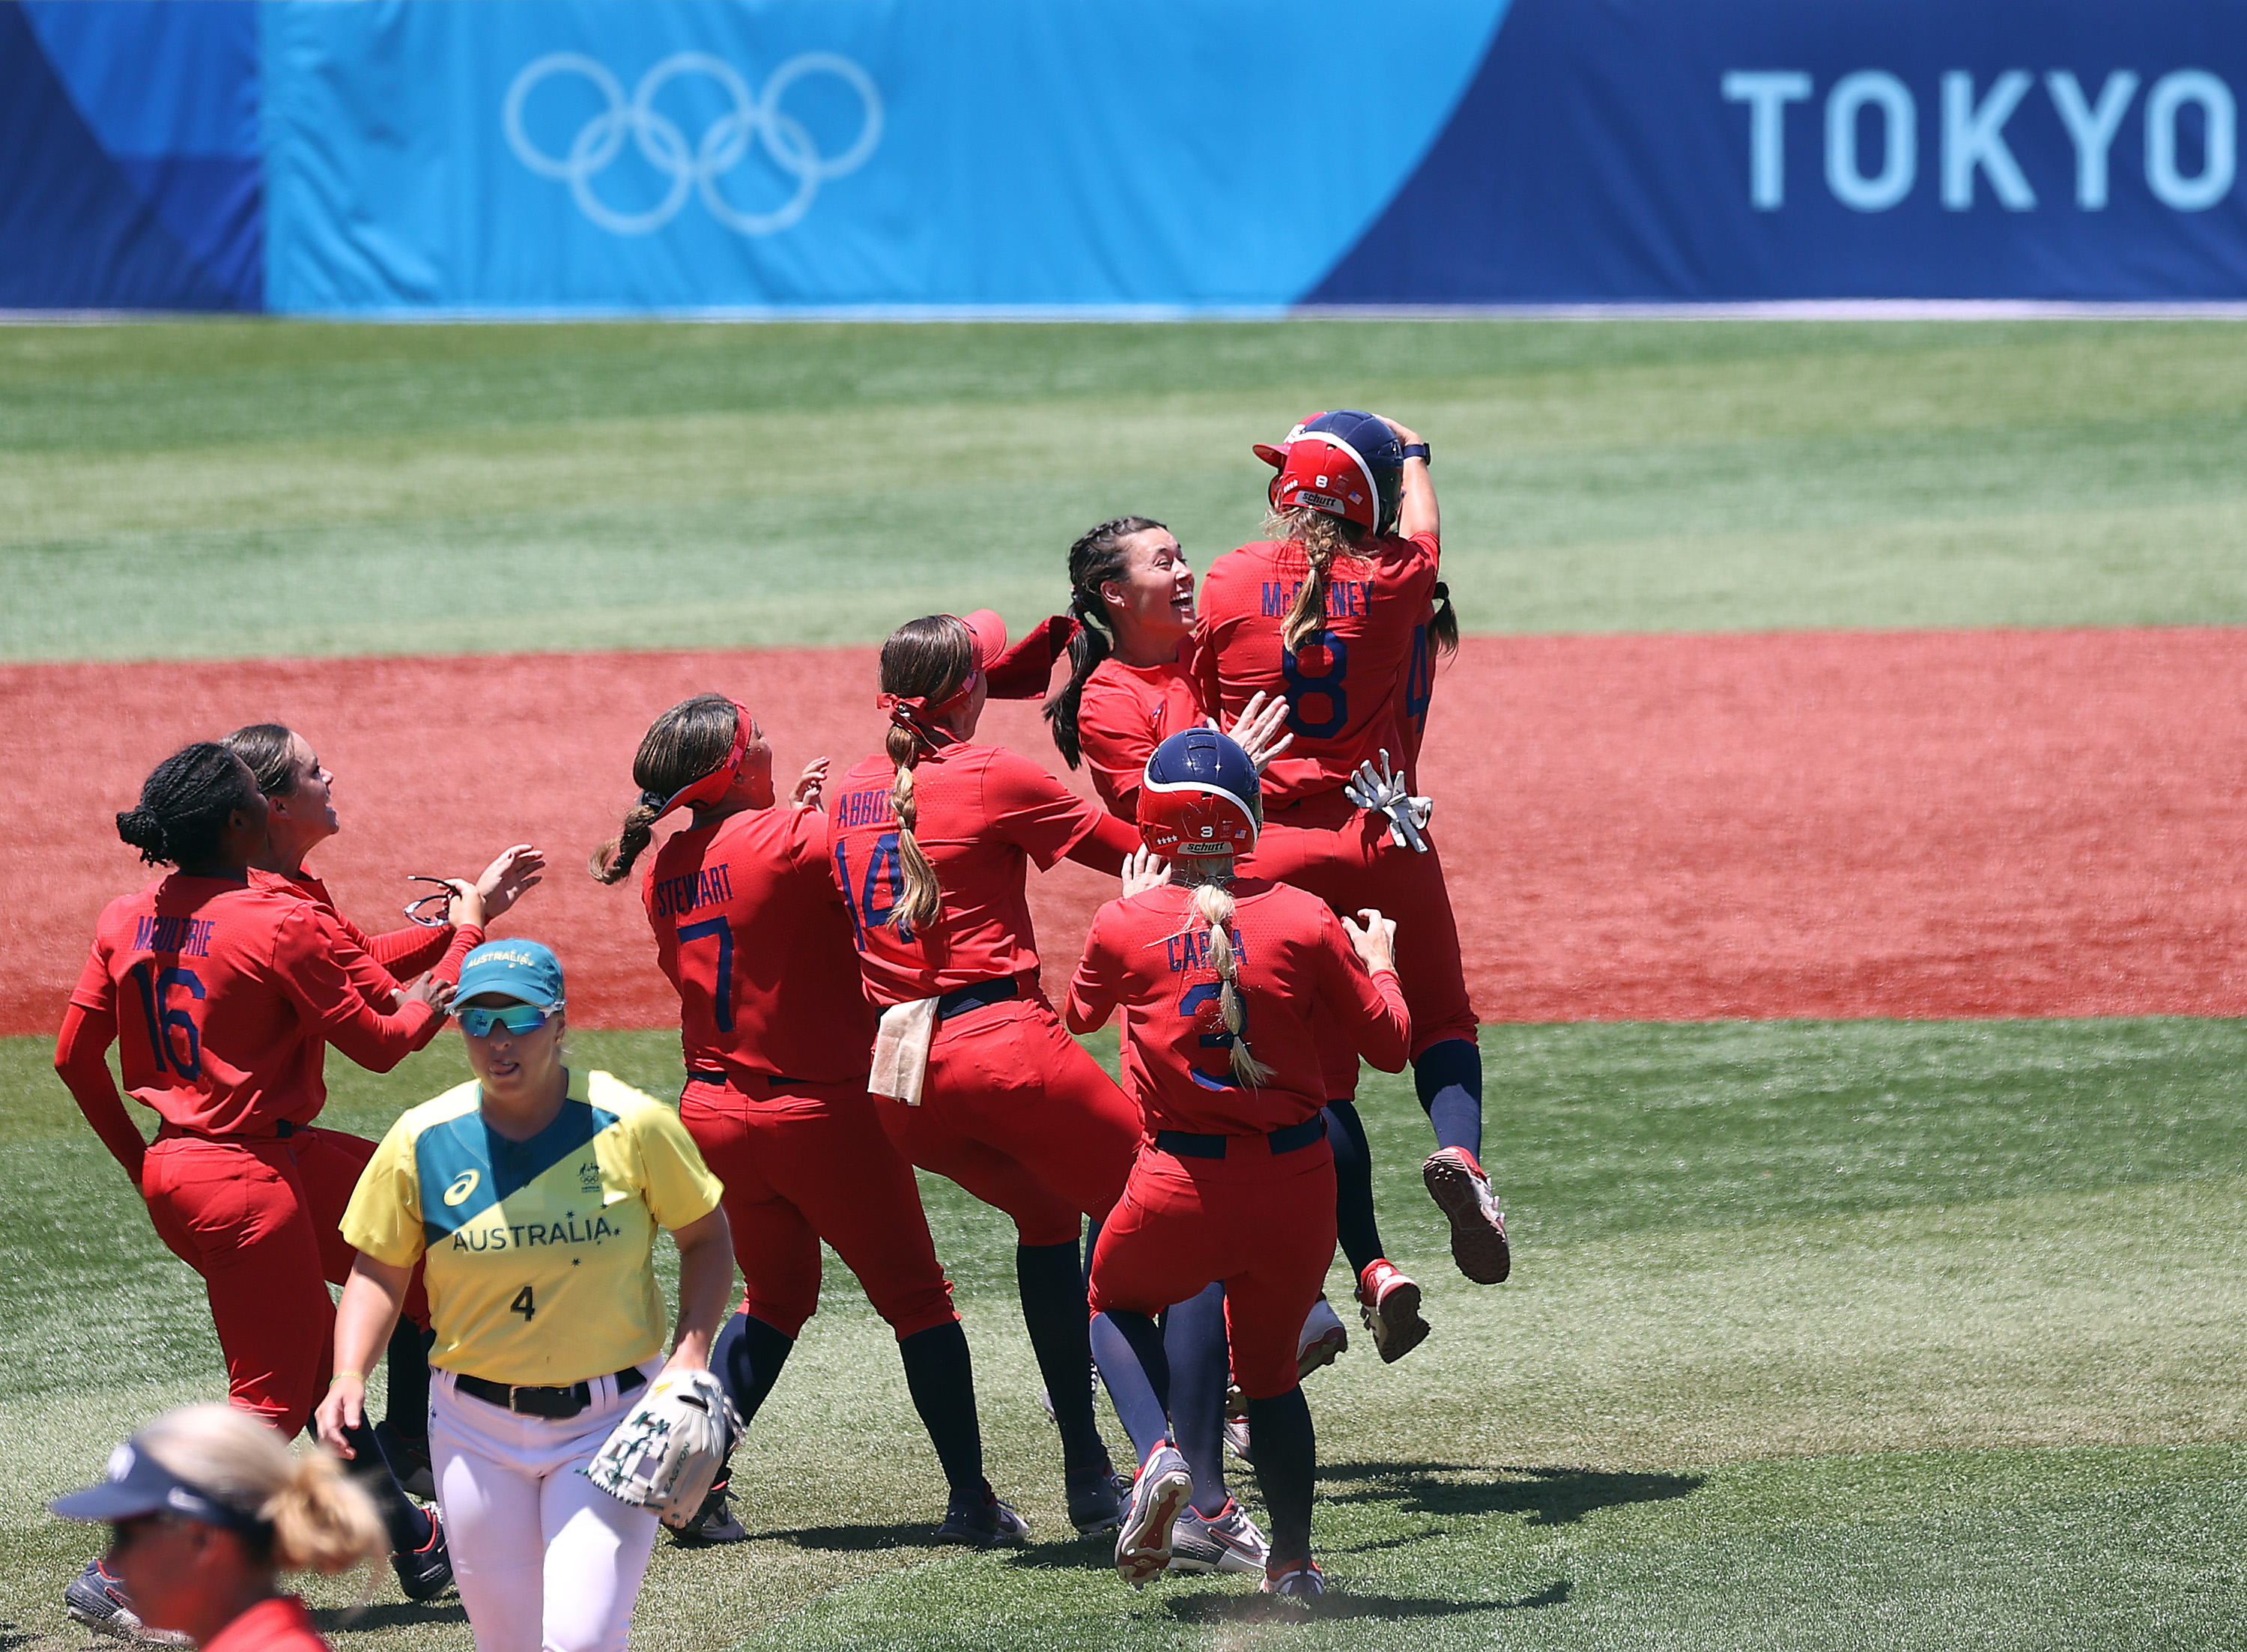 A jubilant mass of humanity descends on Amanda Chidester after her walk off single enabled the US to defeat Australia.